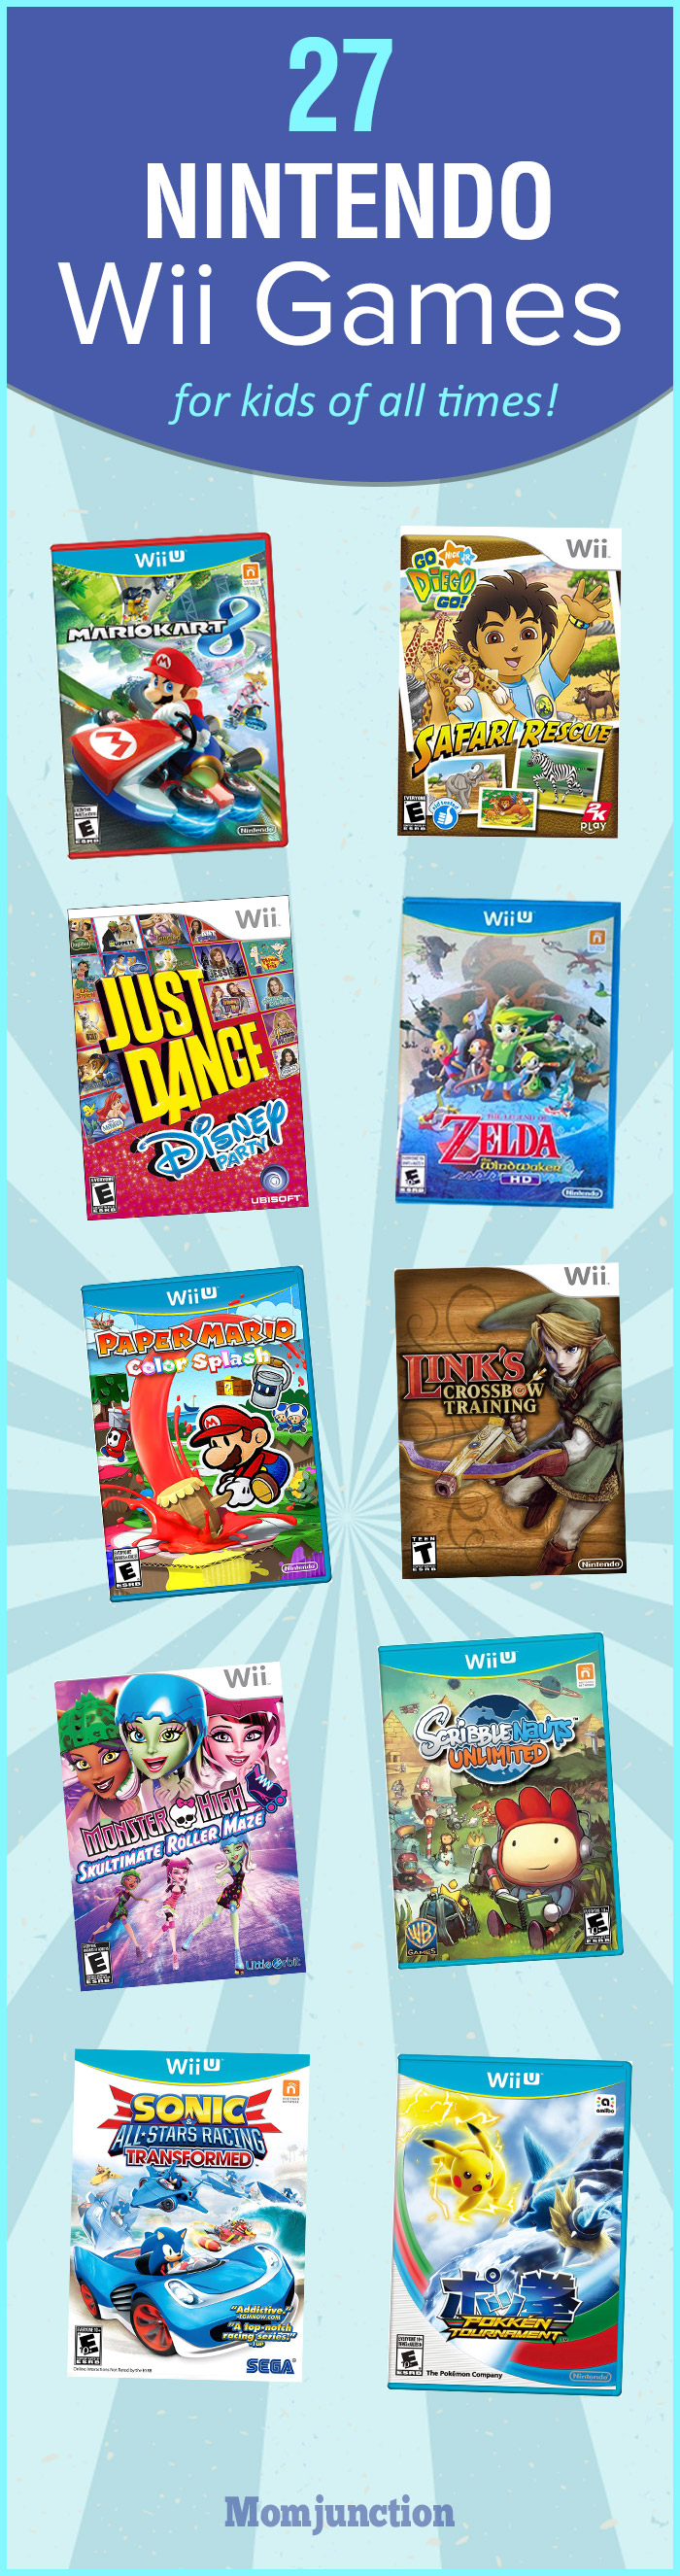 Wii U Games For Girls : All wii games pictures to pin on pinterest daddy